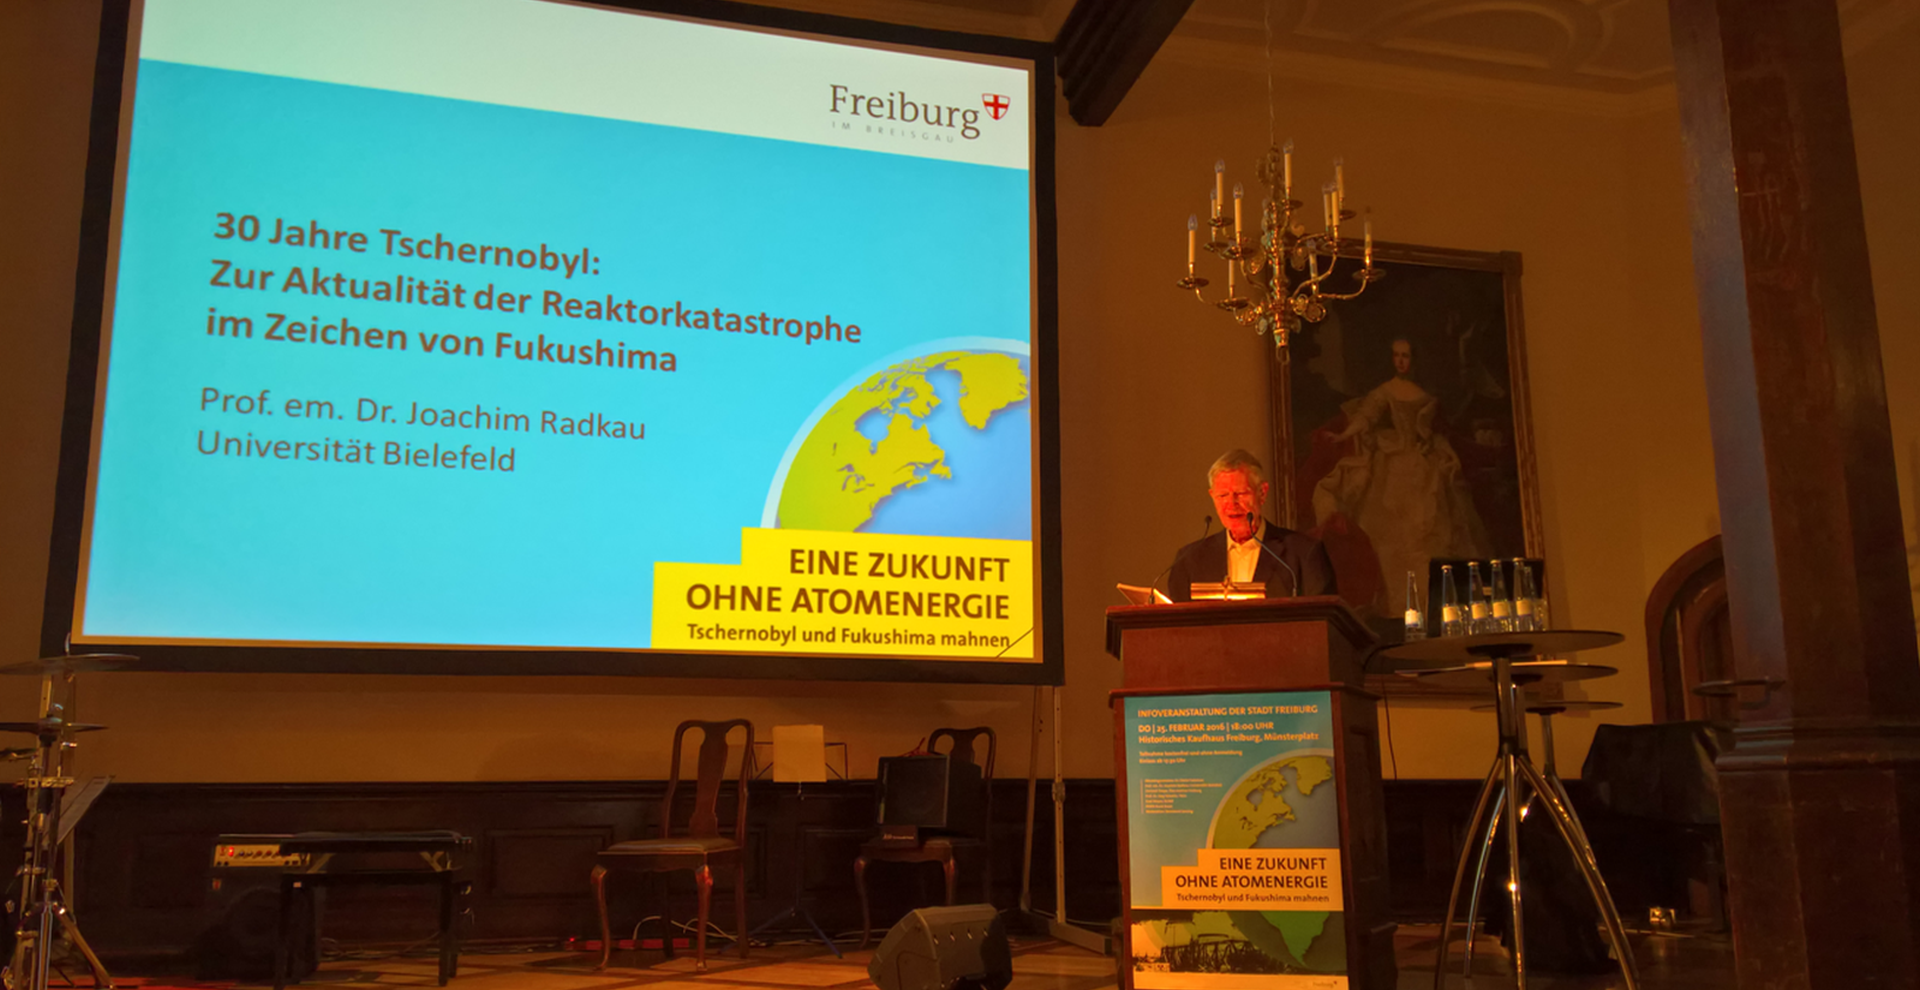 German energy sector historian Joachim Radkau is giving a speech next to a big screen with a presentation.